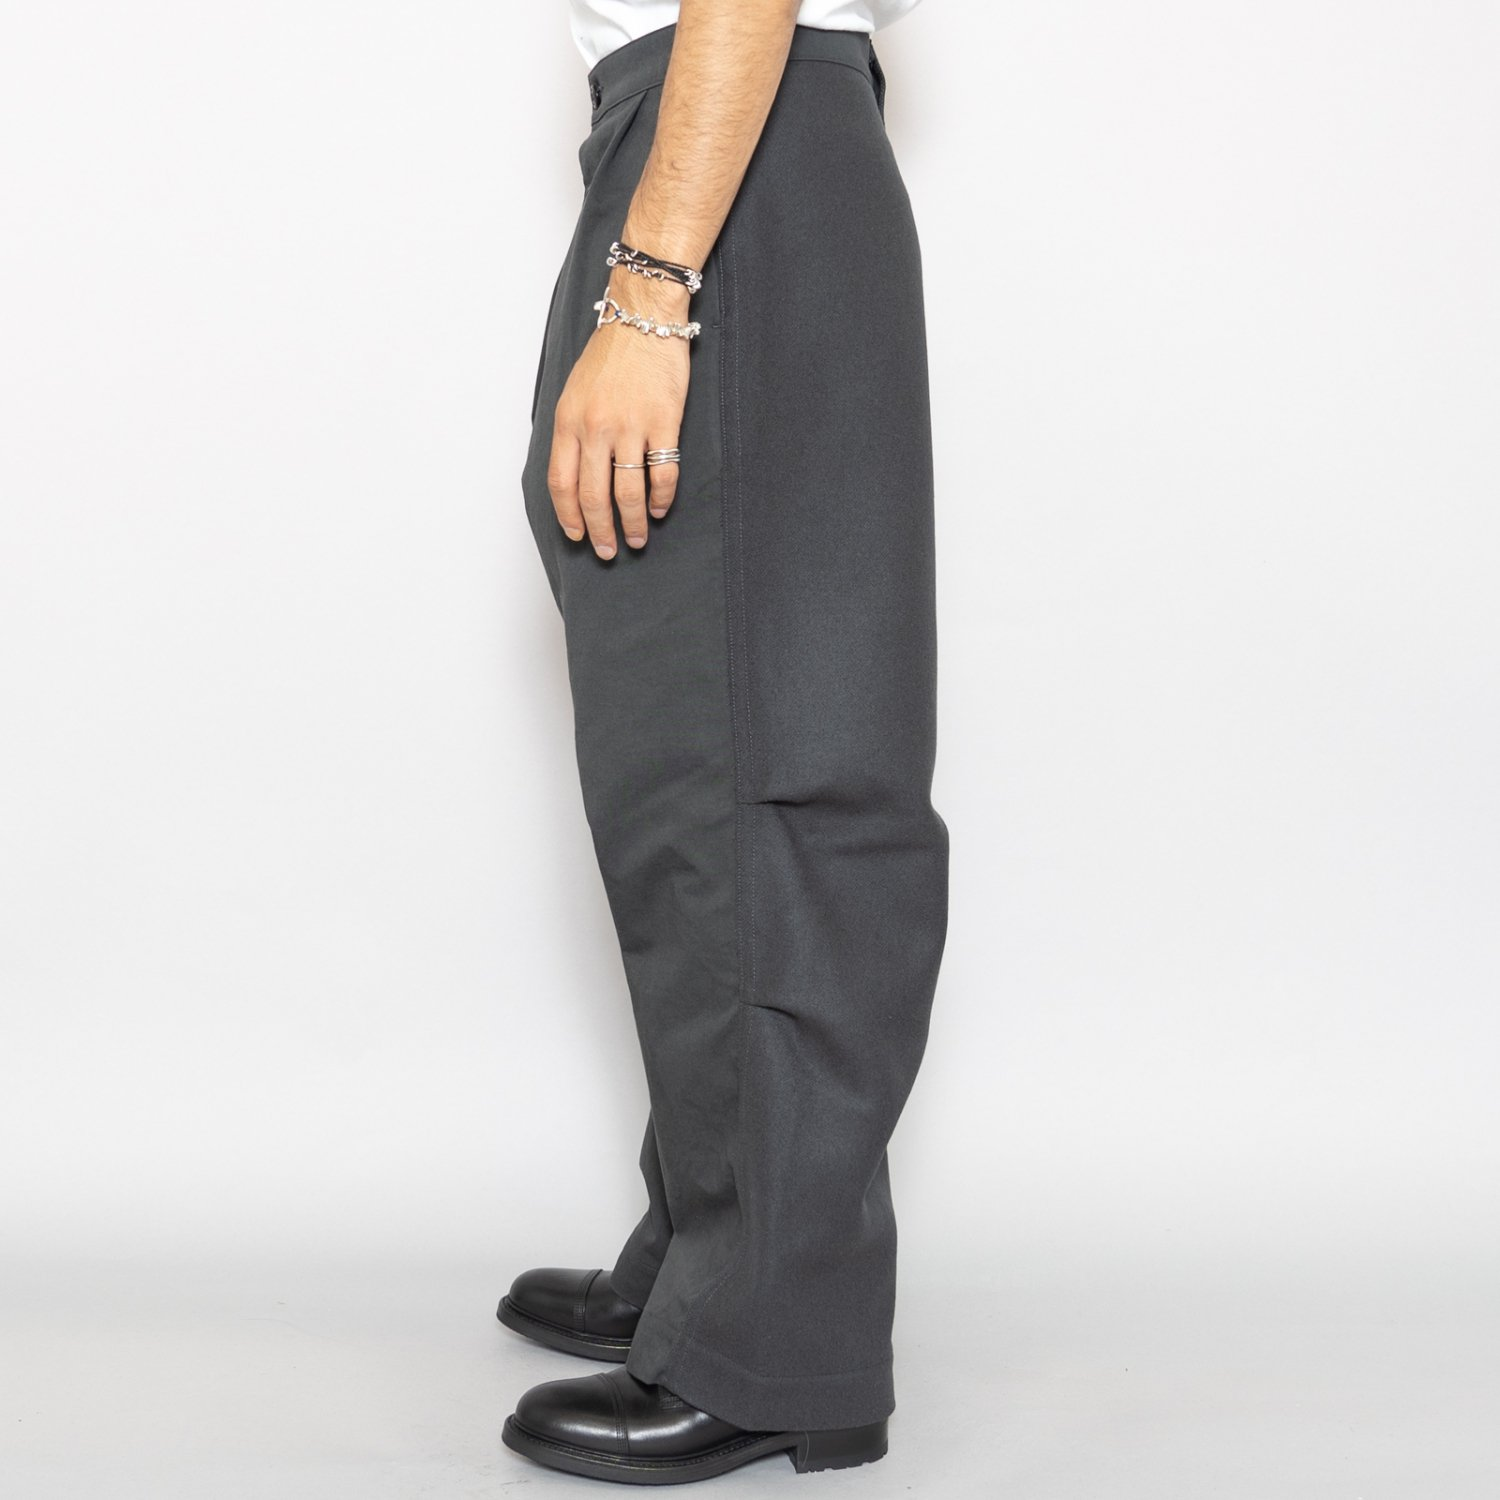 TUKI * 0136 Reversed Pants Melton/Solid Twill * Steel Blue